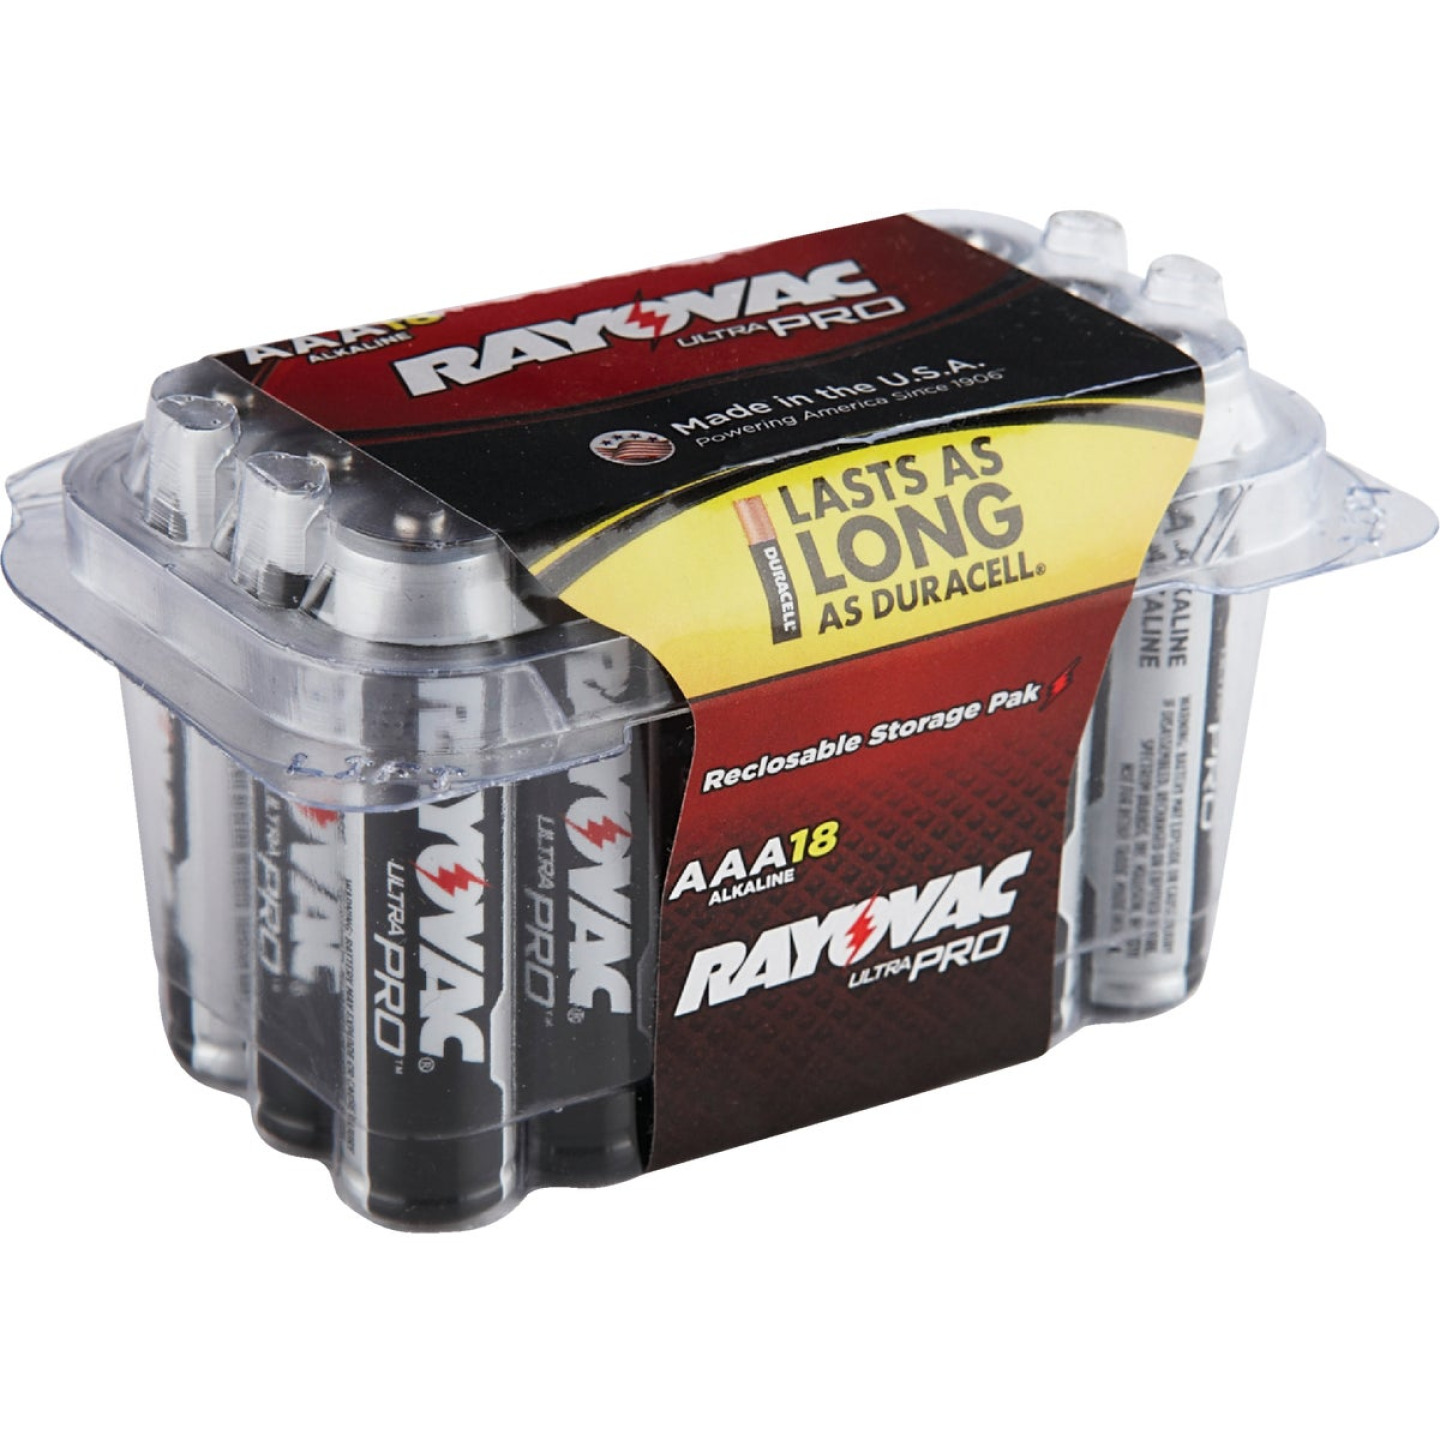 Rayovac UltraPro AAA Alkaline Battery (18-Pack) Image 1